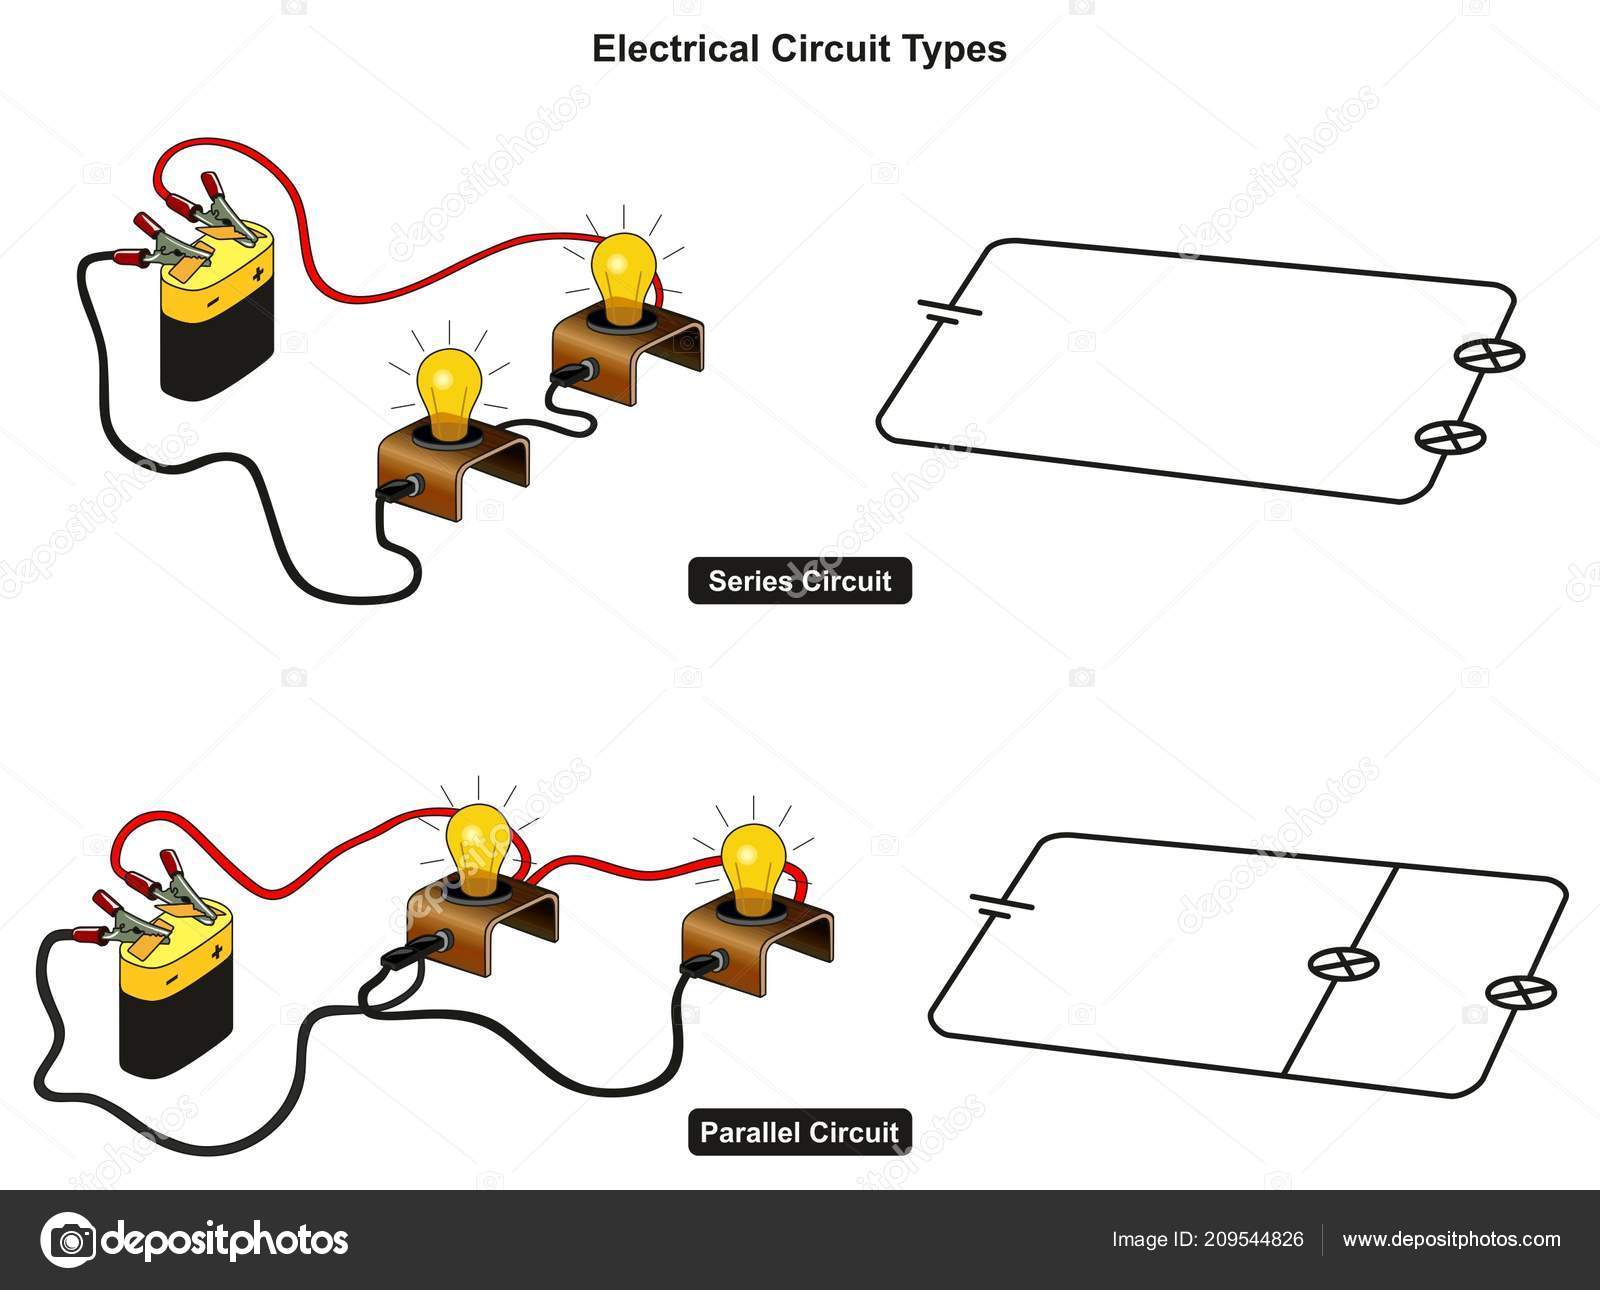 Parallel Circuit Diagram Vector Electrical Wiring House Types Infographic Showing How You Connect Rh Depositphotos Com And Series Circuits